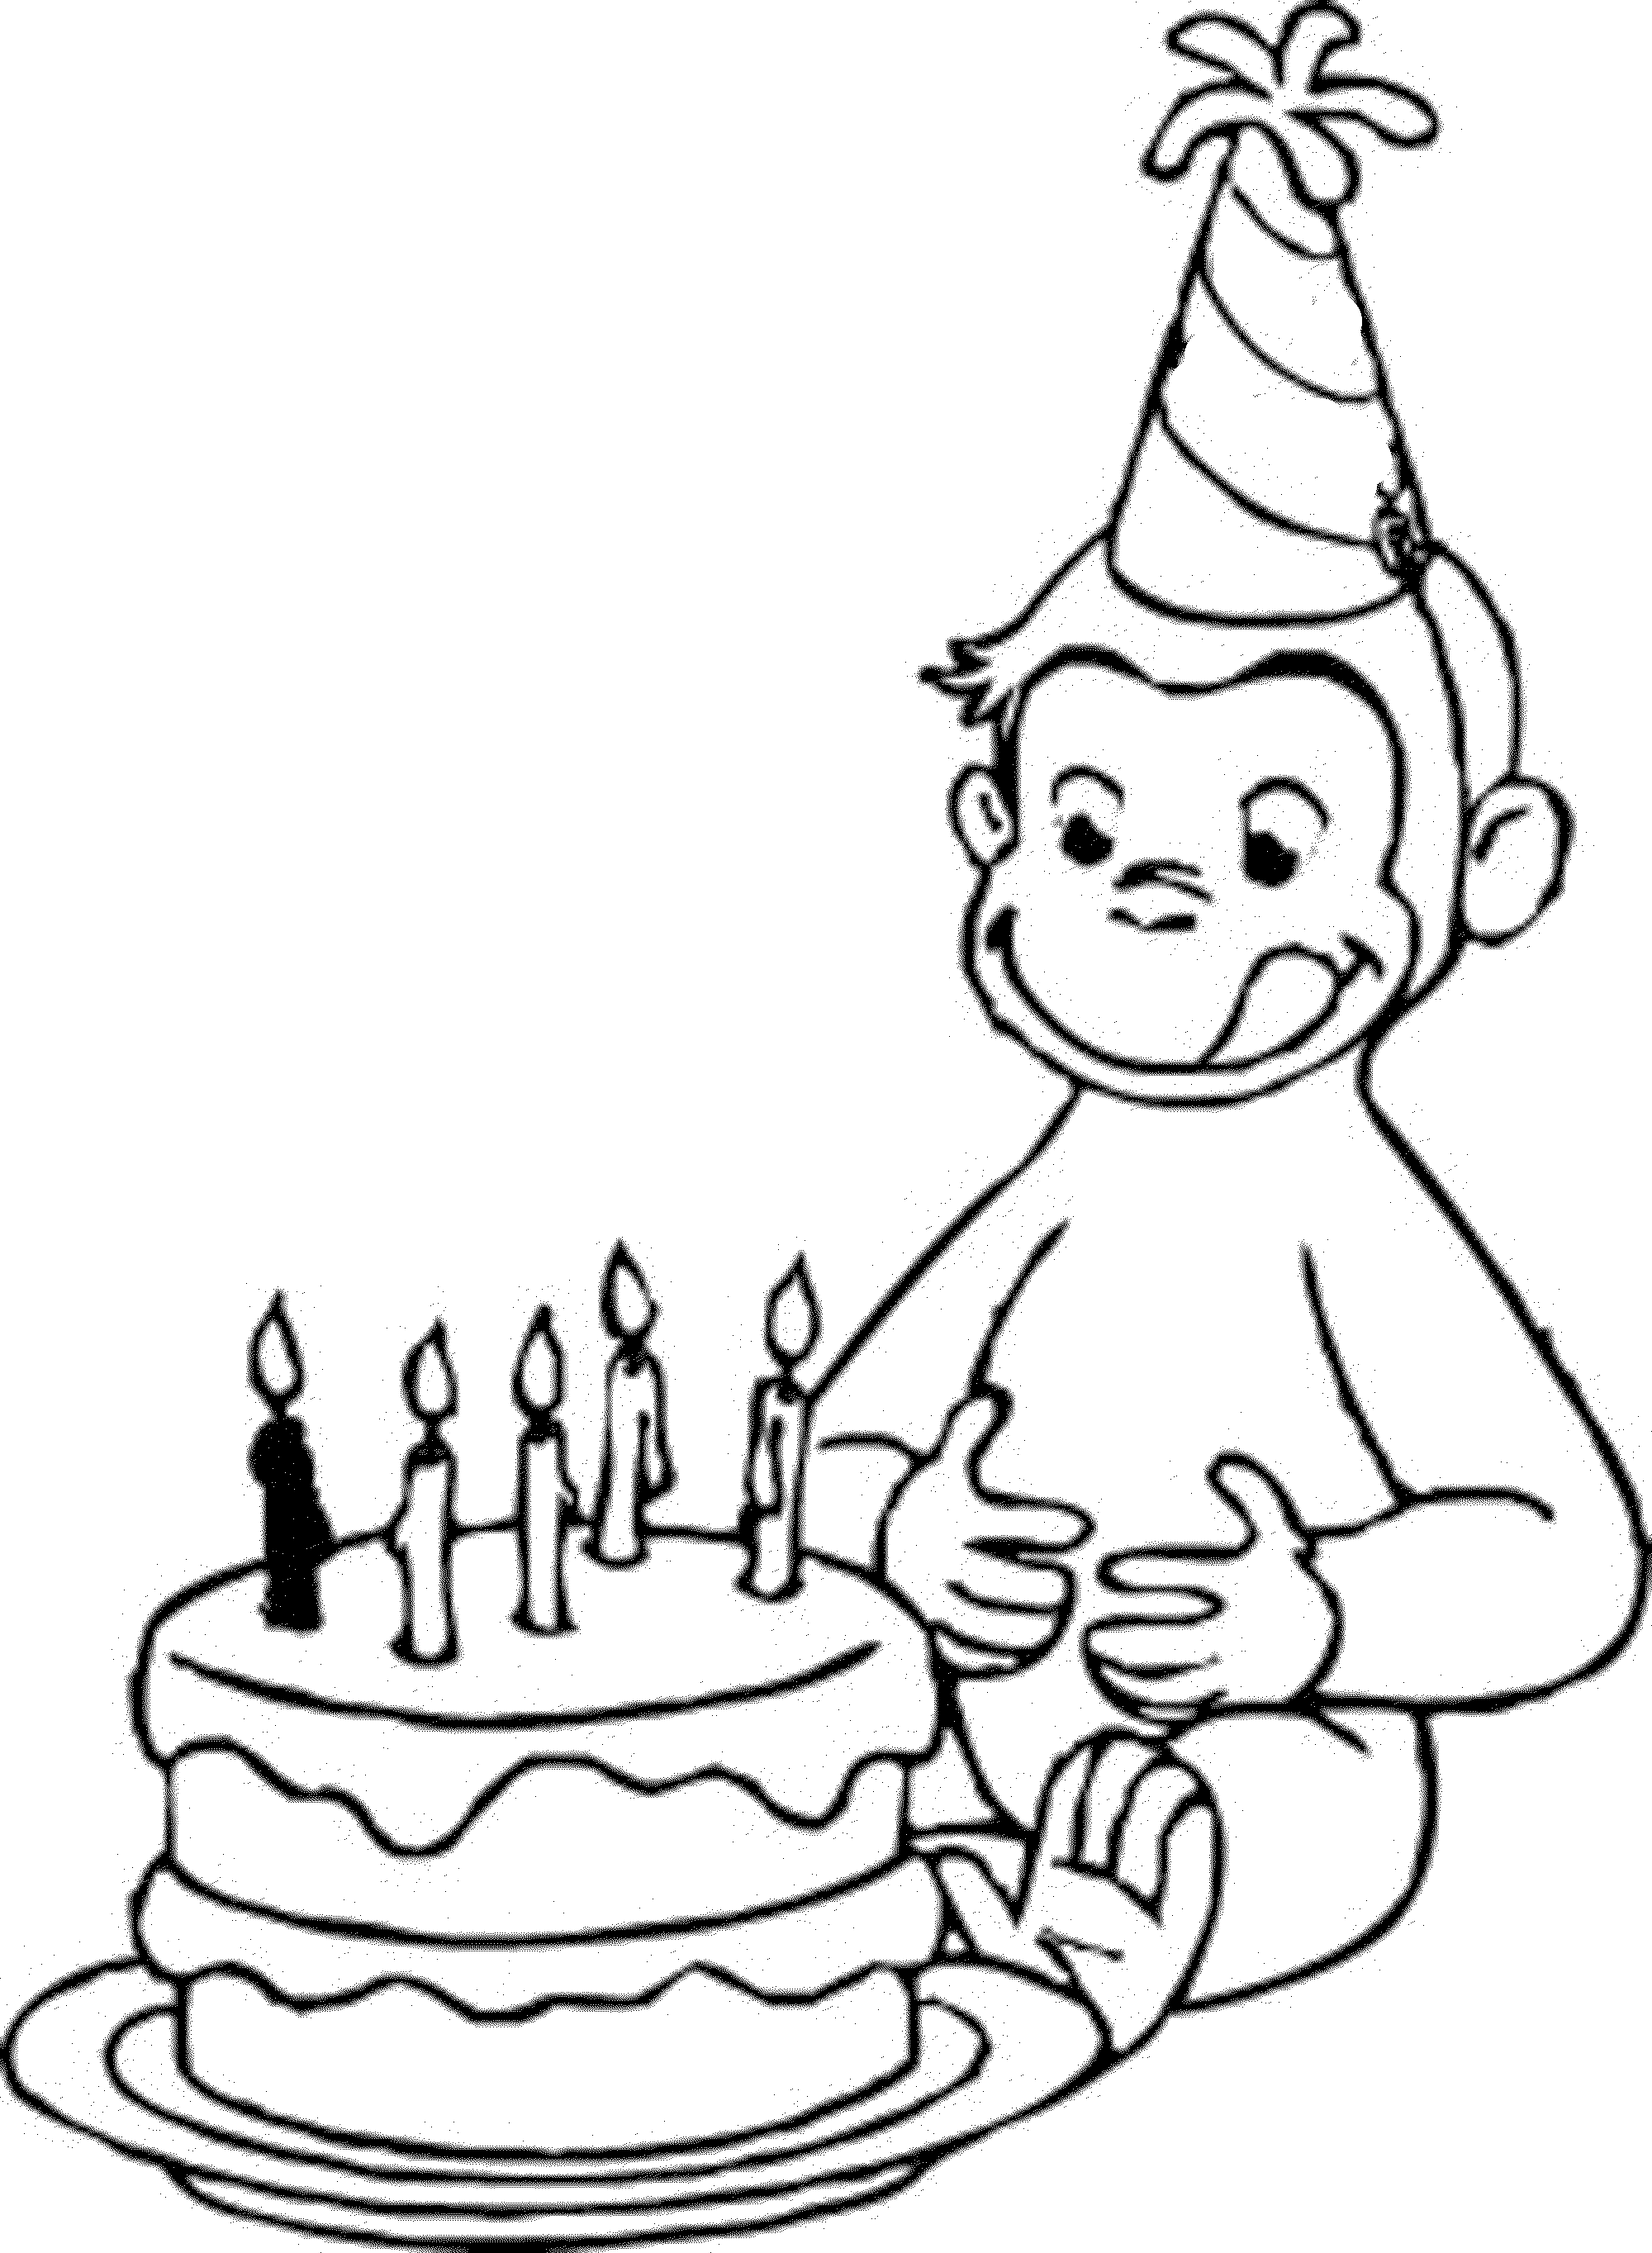 Happy Birthday Coloring Pages For Boys Coloring Pages Birthday